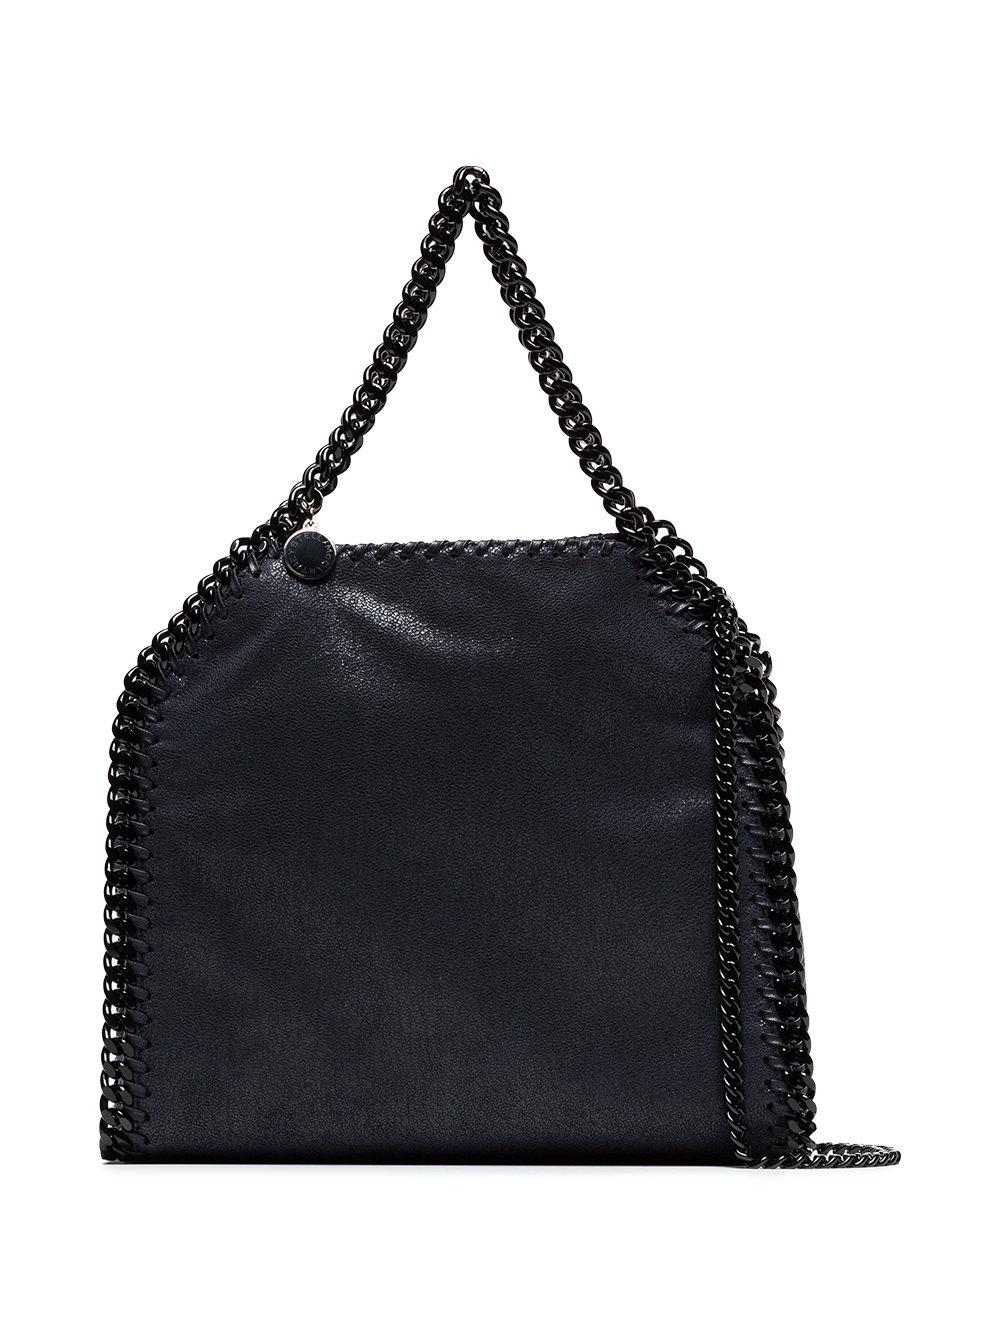 89016331c3ed Stella Mccartney Falabella Tote in Black - Lyst